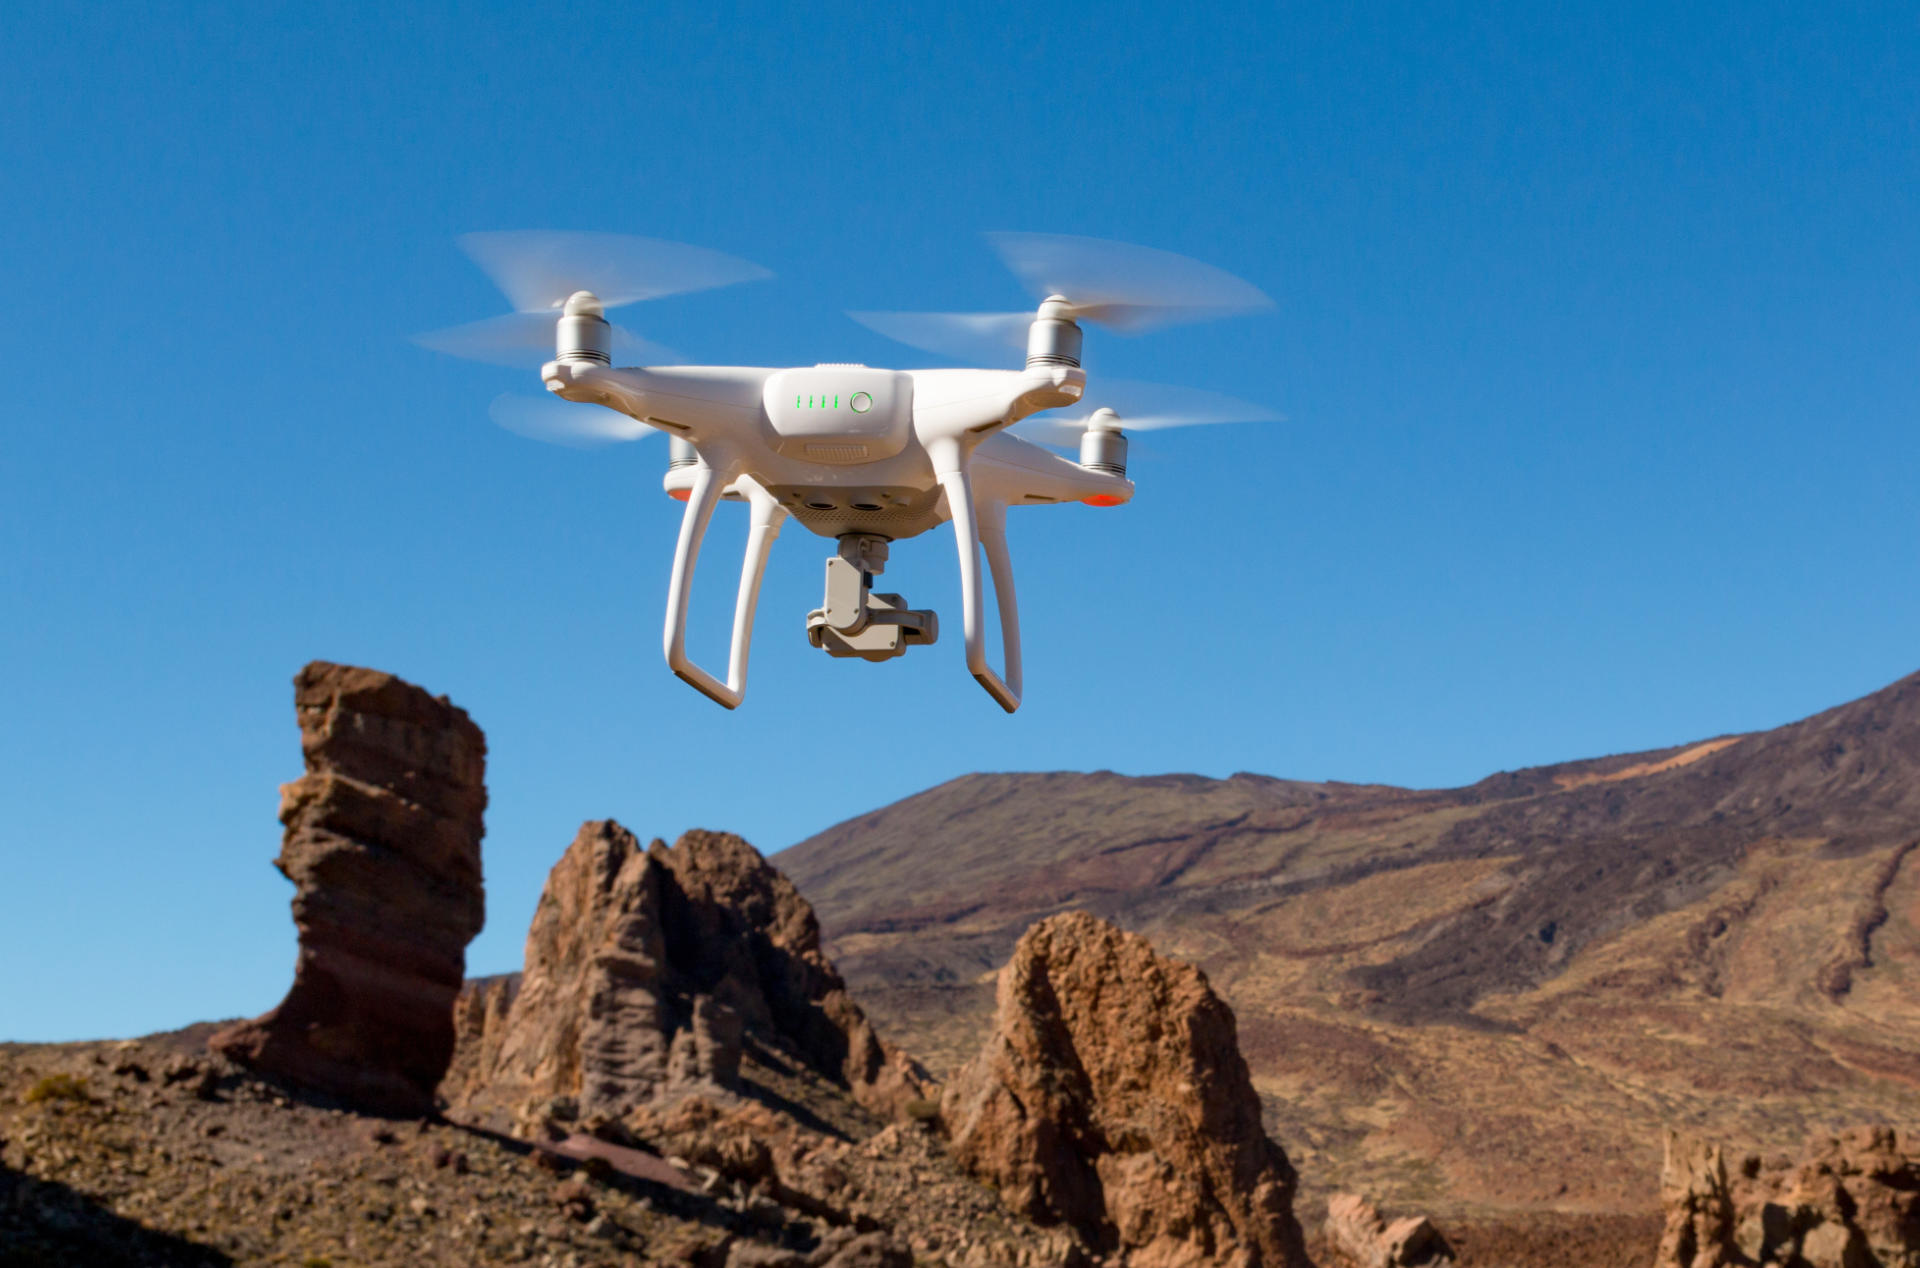 Drones For Filmmaking: Where Should you Focus?